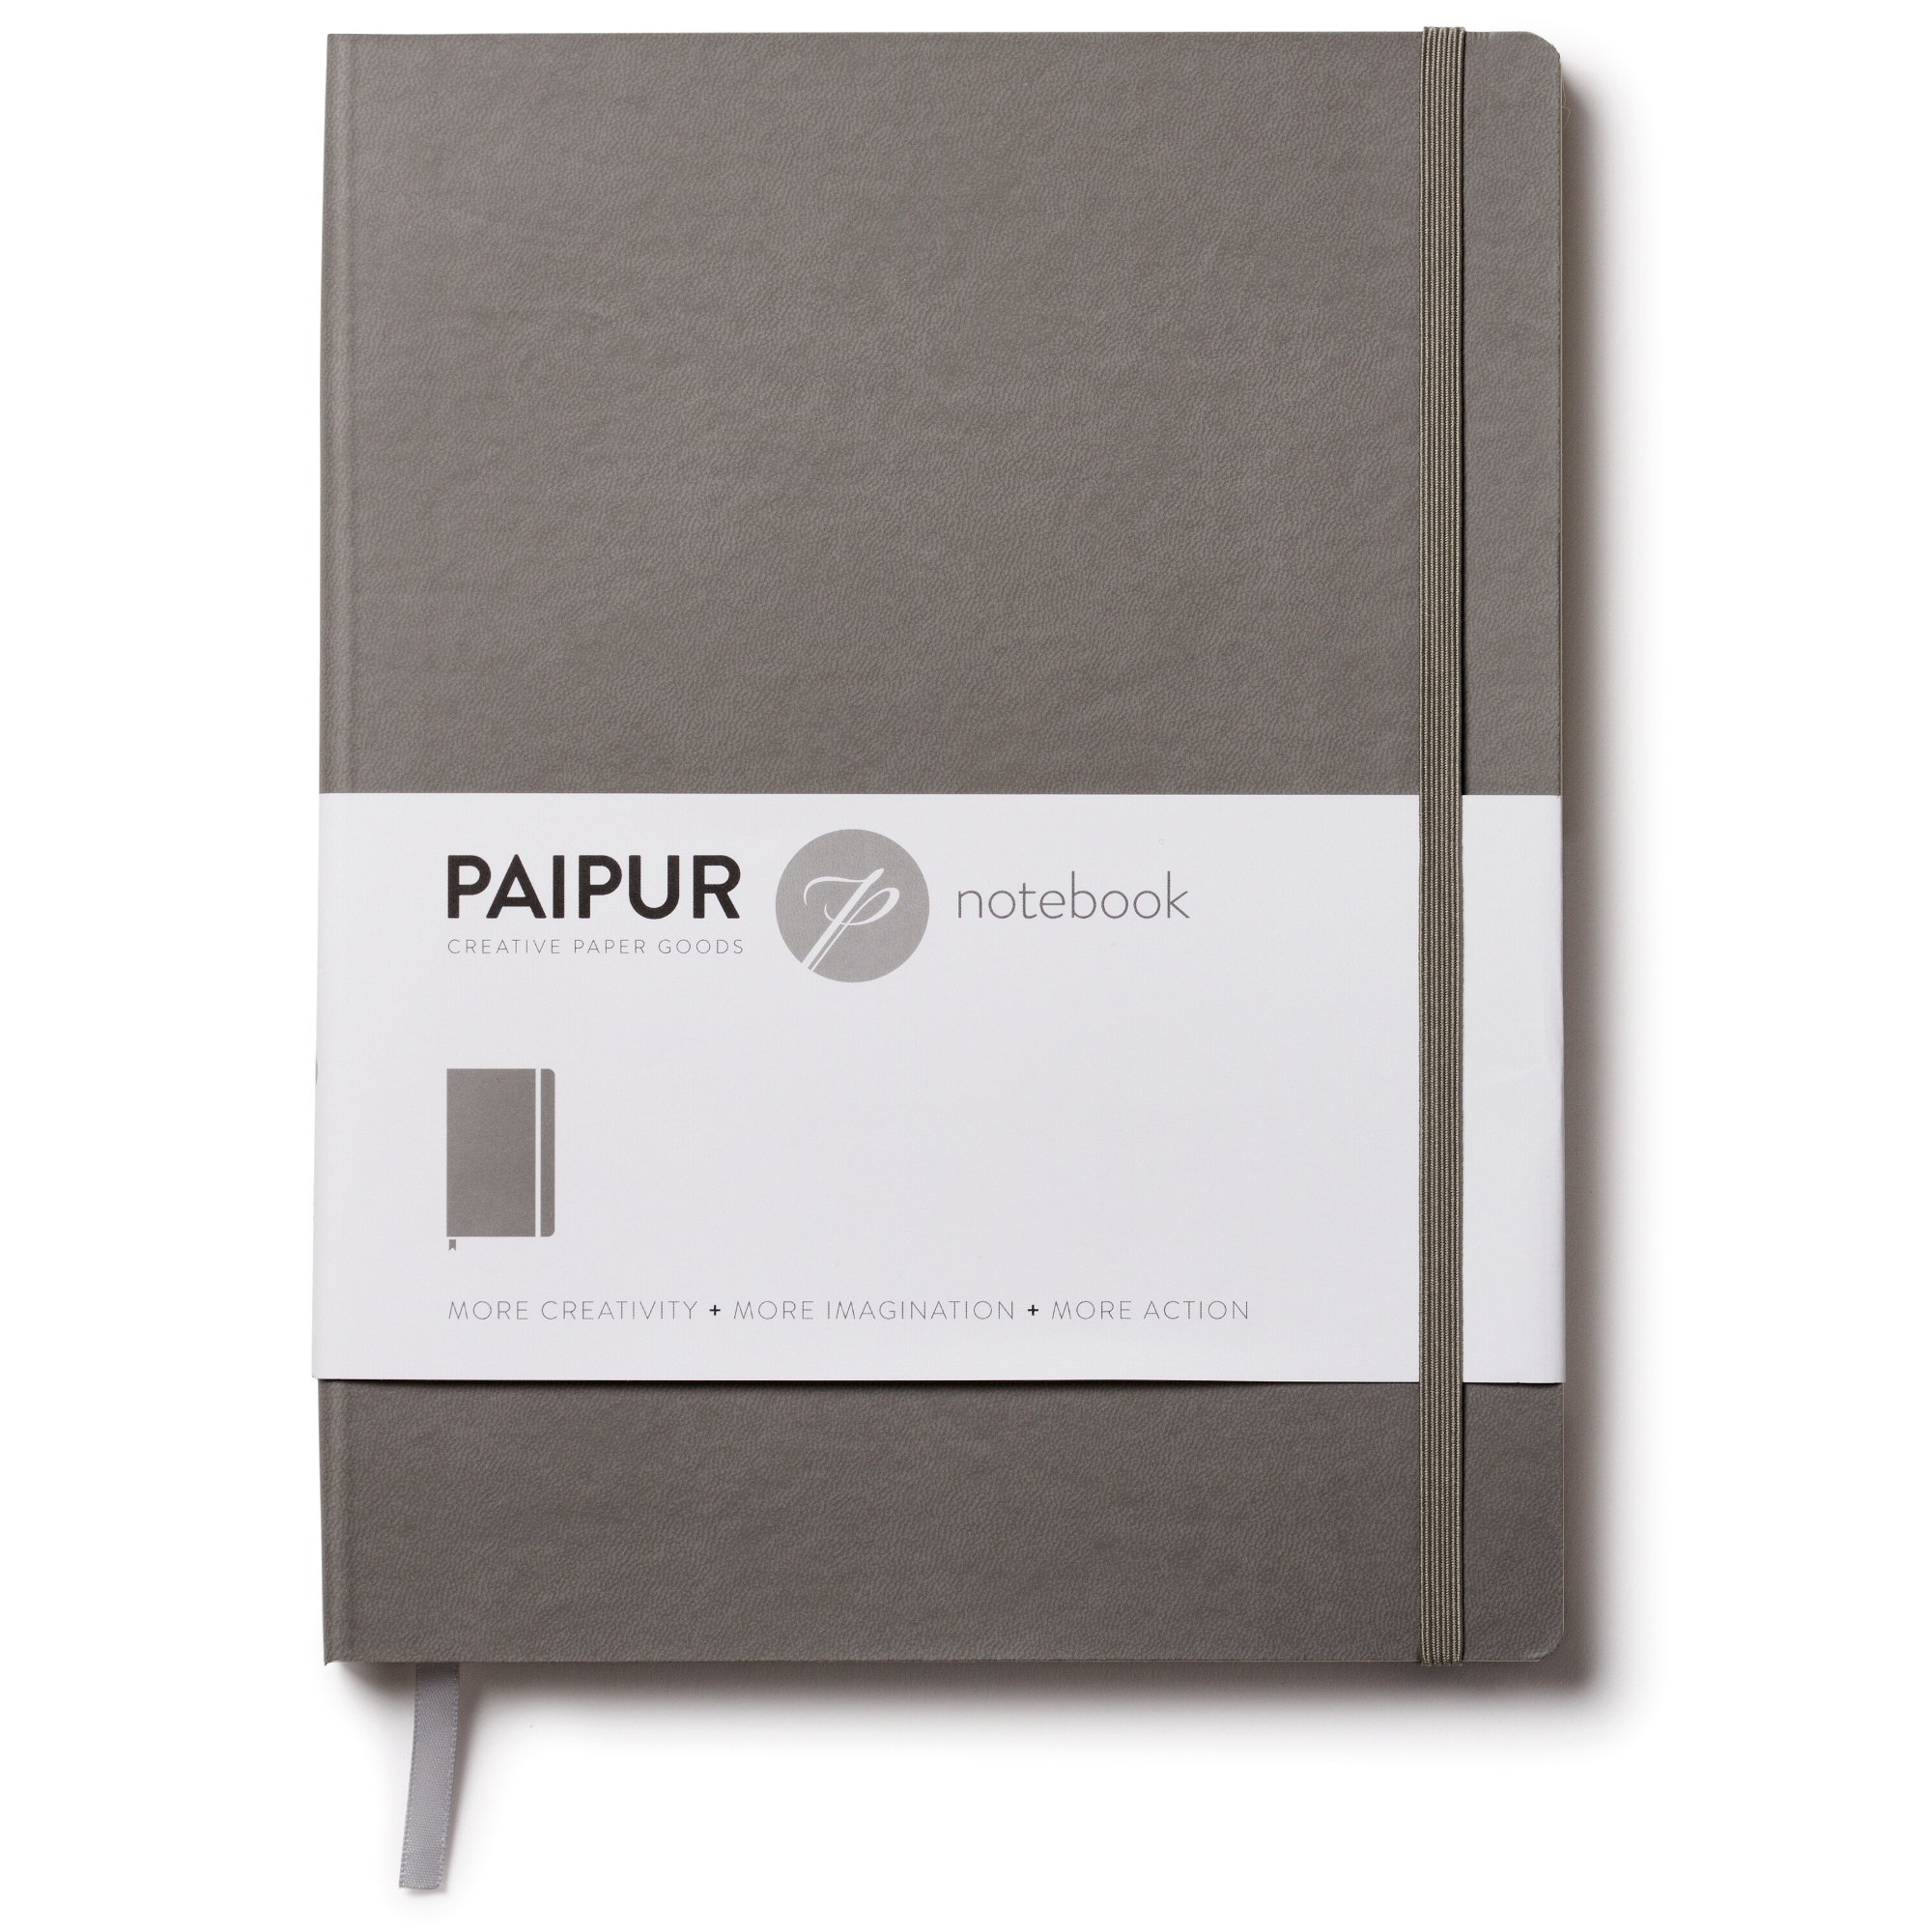 PAIPUR Fountain Pen Edition Notebook ~ LARGE 9.75'' x 7.5'' Size in Choice of 3 Different Formats ~ Classic Style Softcover ~ Premium 120GSM Paper for All Pens with No Bleed by PAIPUR